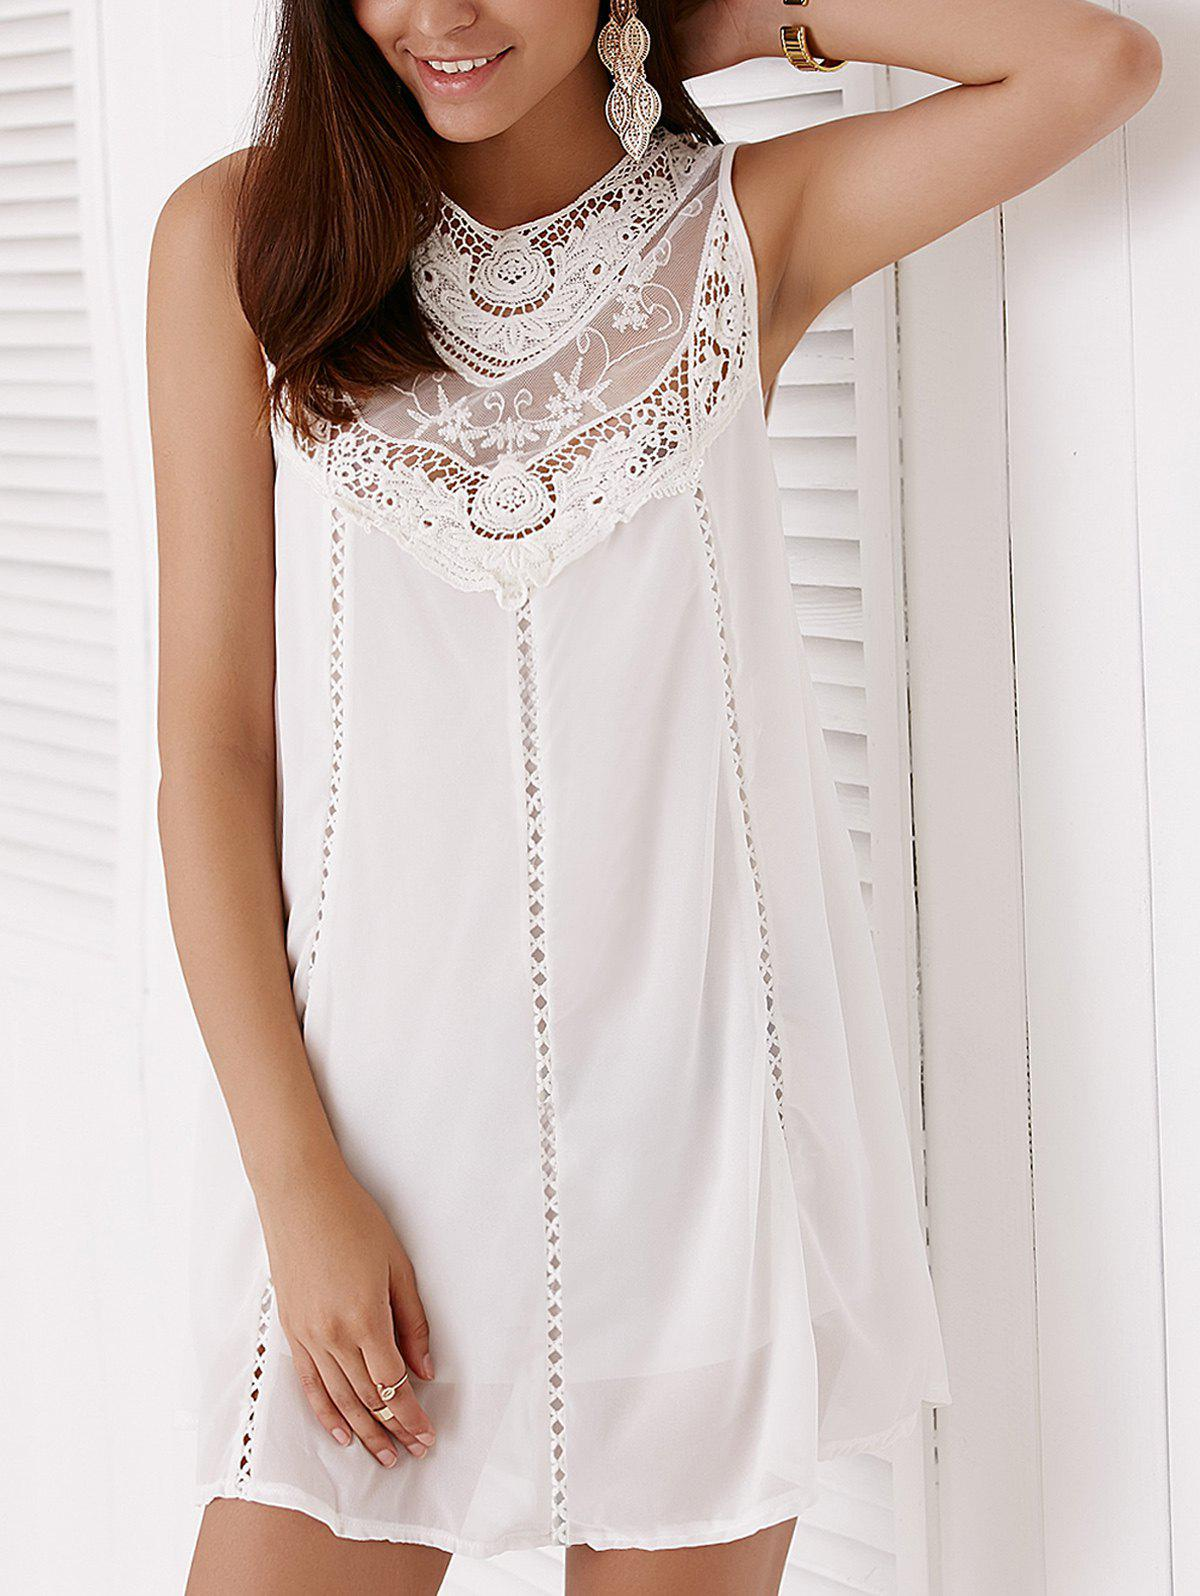 Trendy Round Collar Sleeveless Lace Splicing Women's Dress - WHITE S